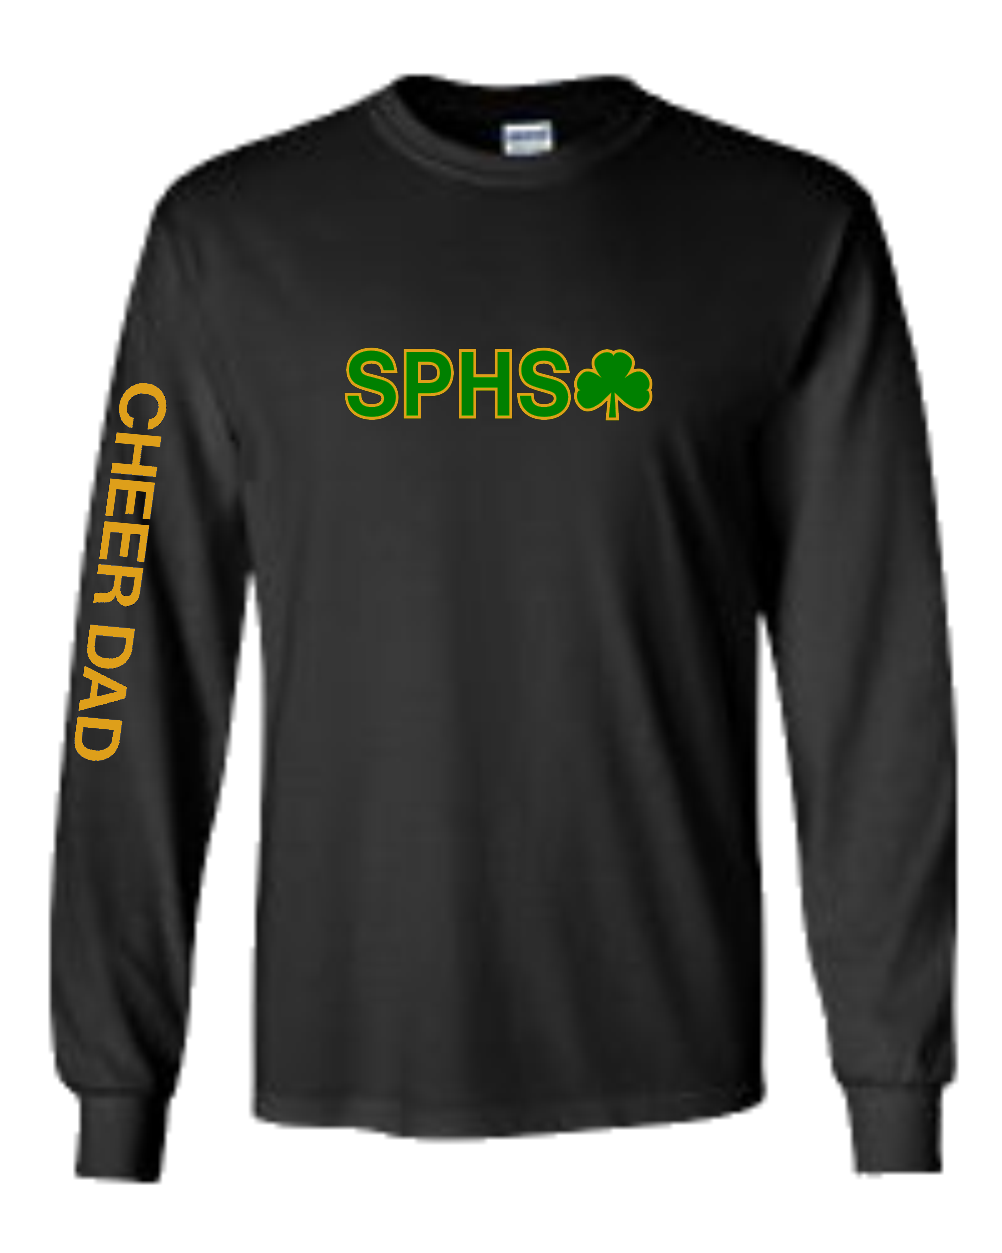 SPHS LONG SLEEVE TEE 2 (NO BLING)